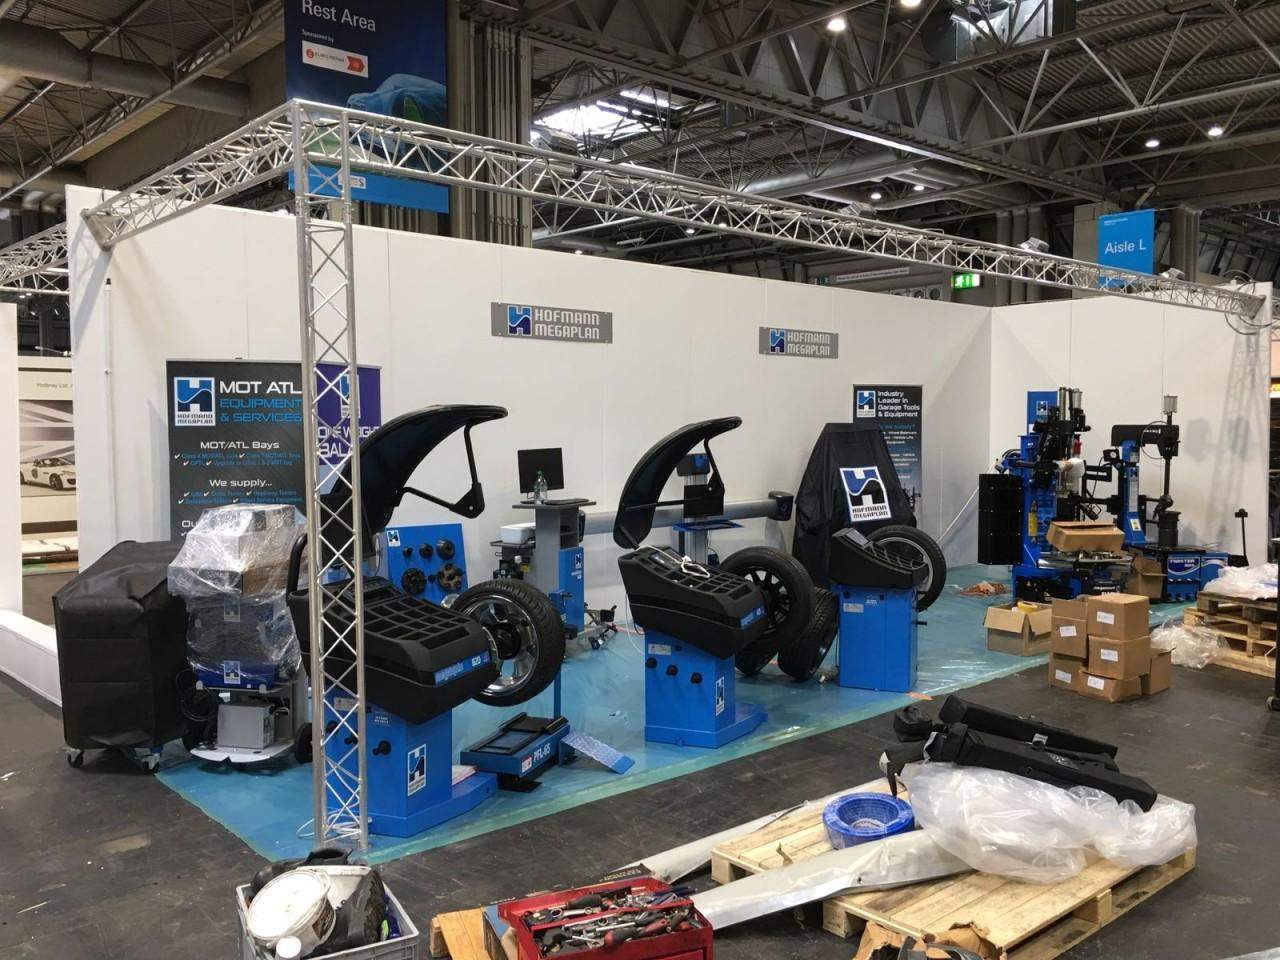 Wheel Balancers unpacked at Automechanika 2018